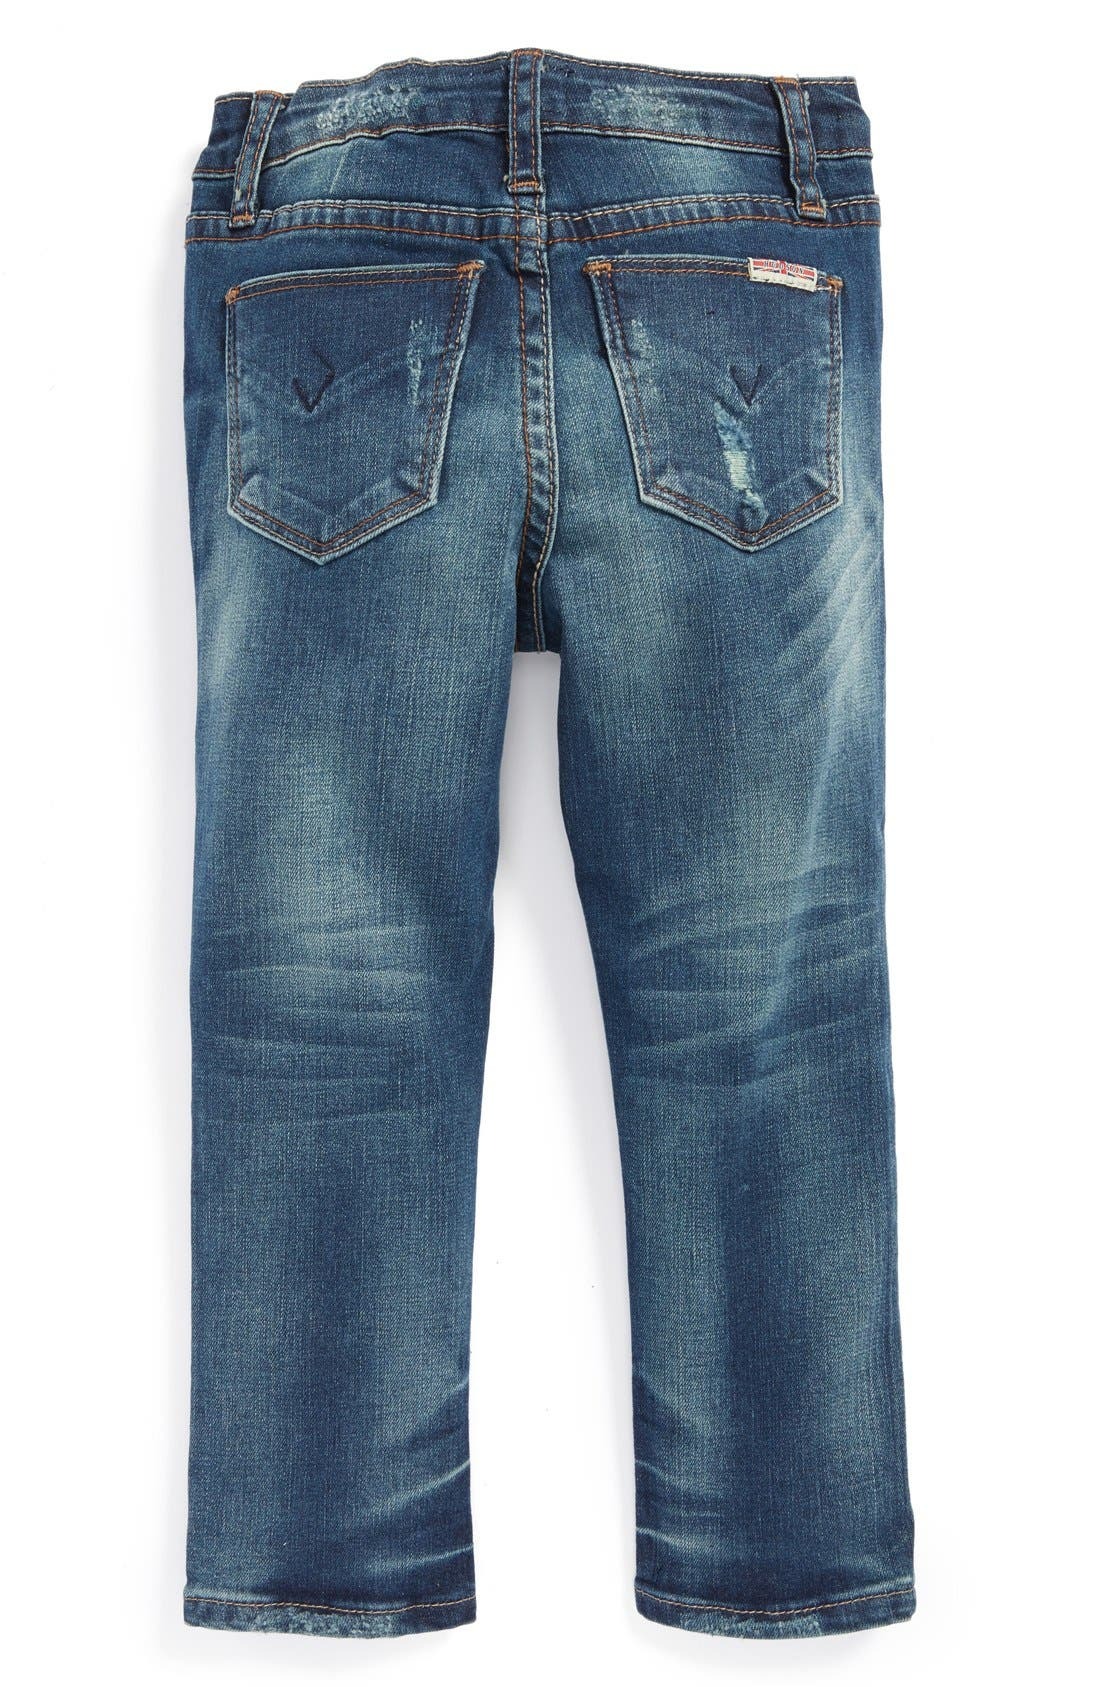 Main Image - Hudson Kids 'Dolly' Distressed Skinny Jeans (Toddler Girls)